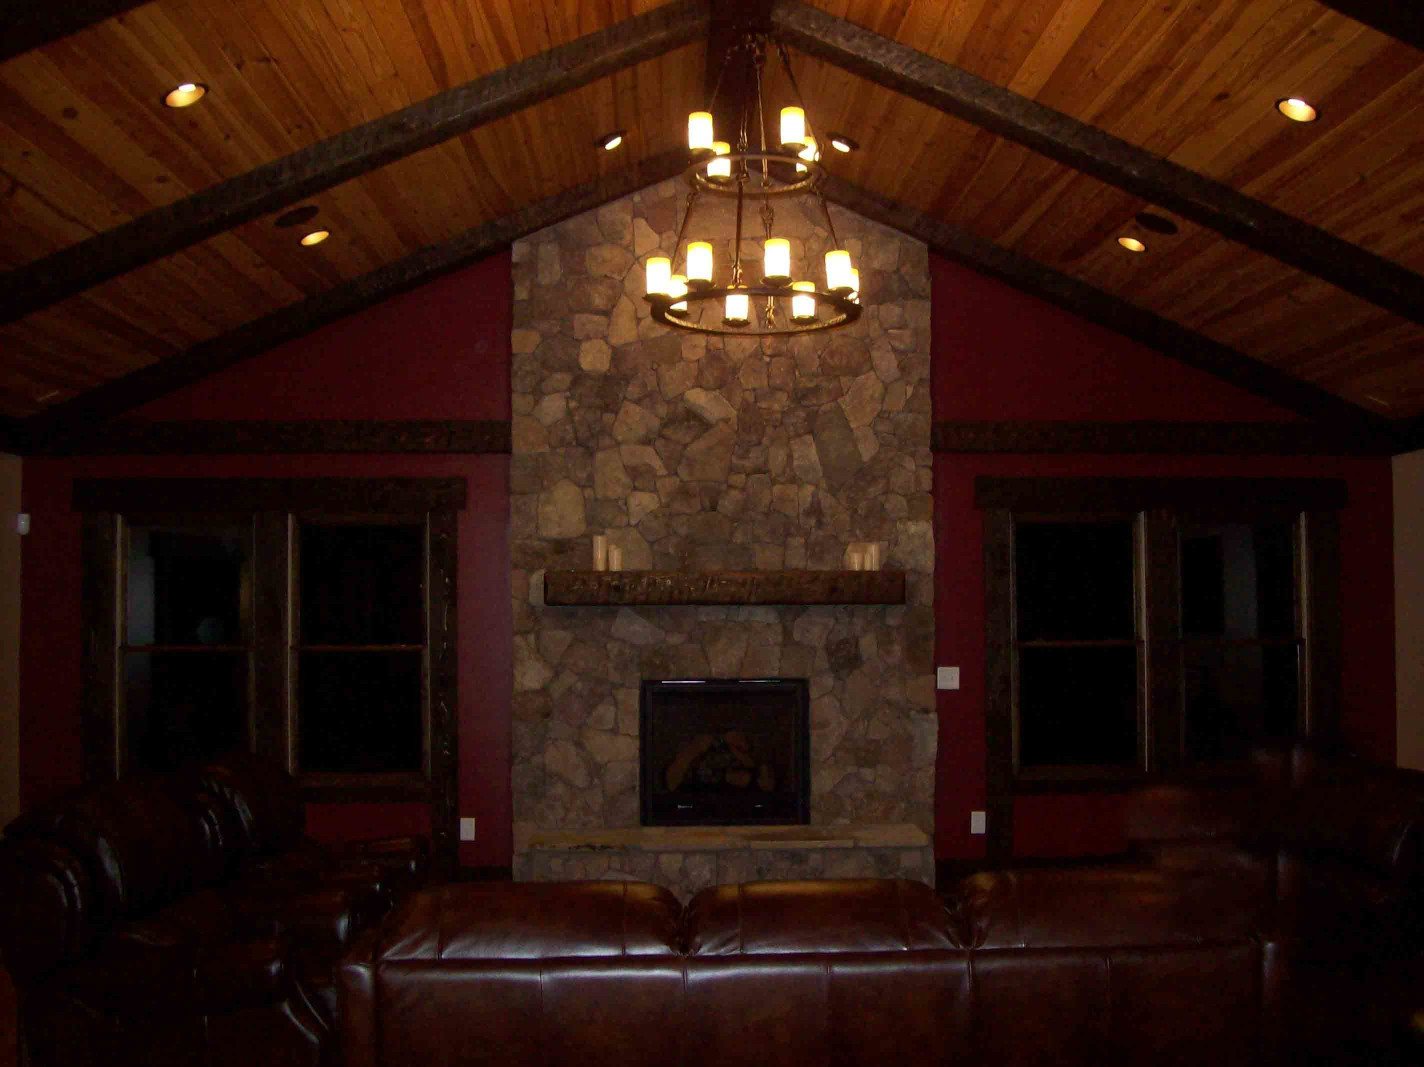 The wood beams and wood mantle add a rustic element to this great room.